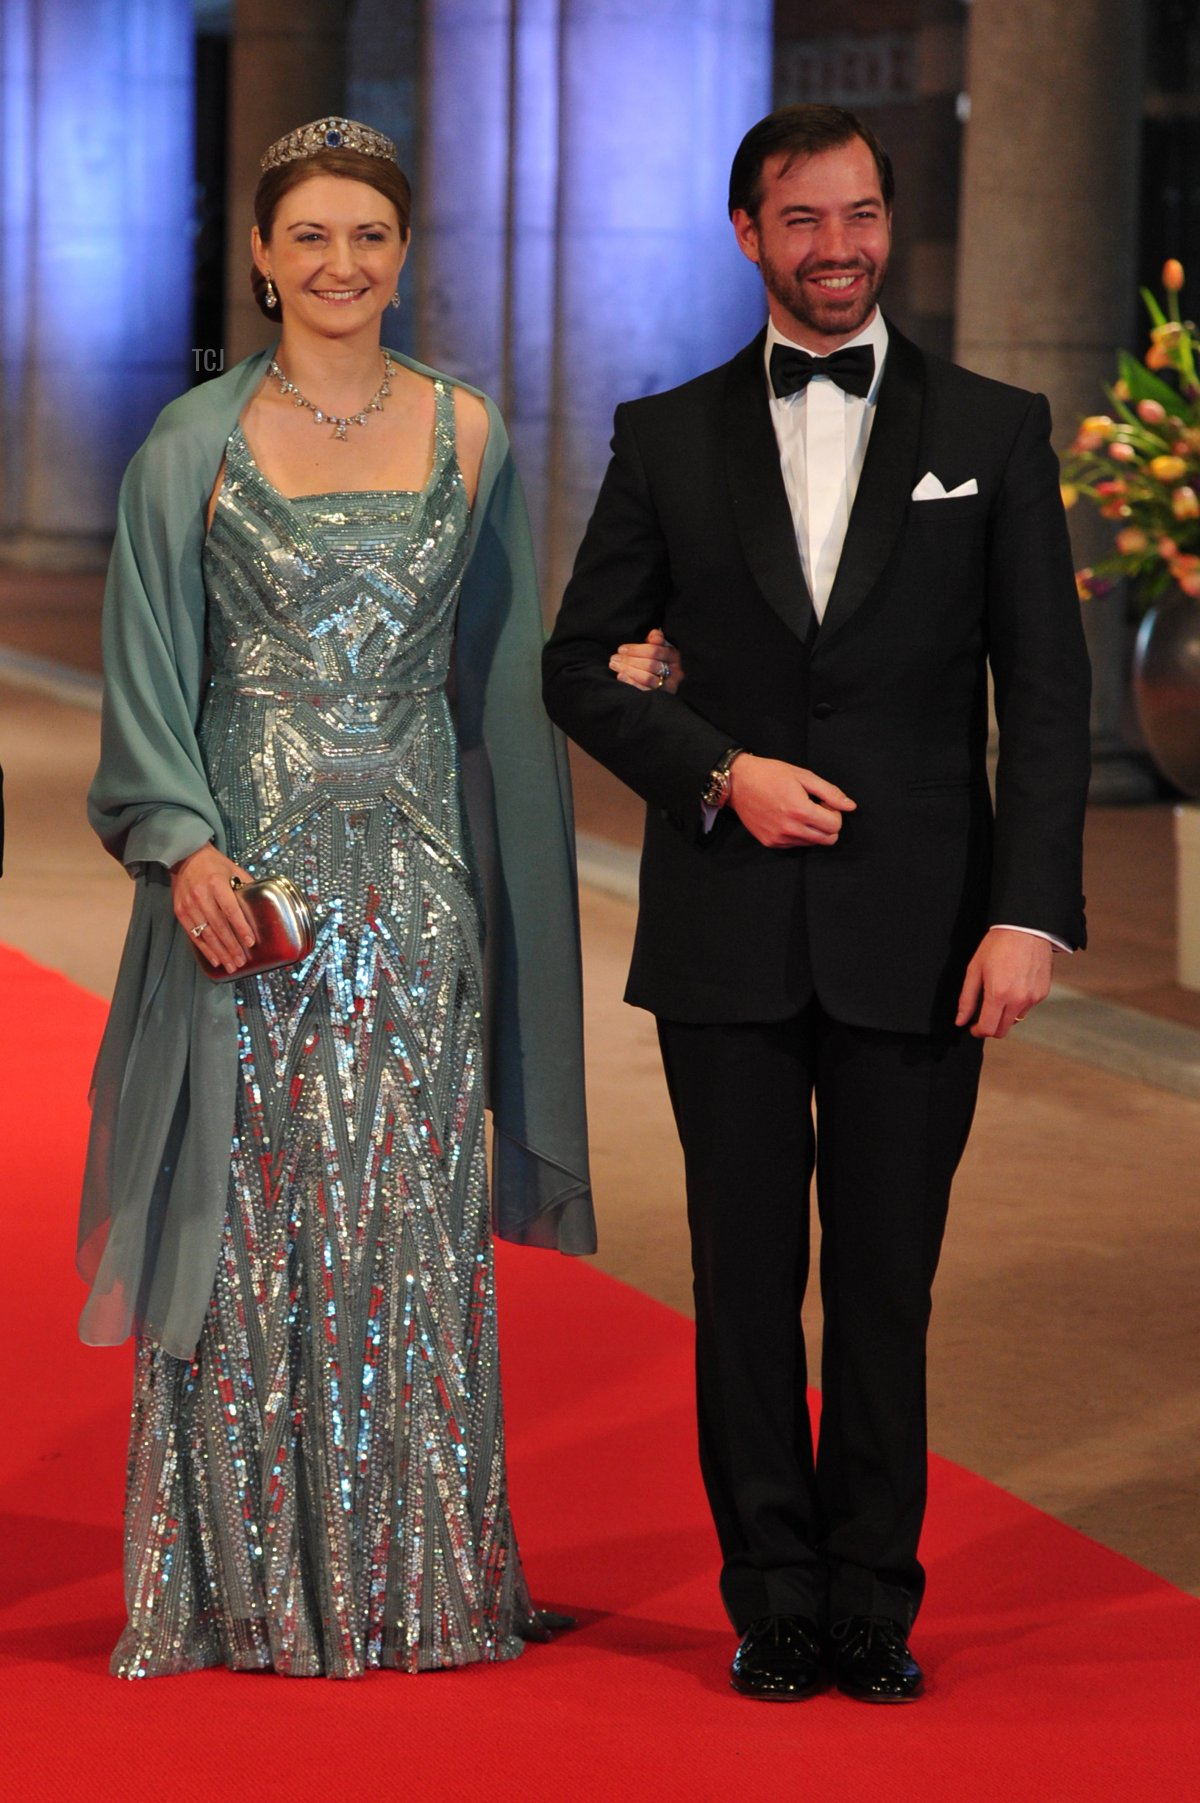 Luxembourg's Grand Duke Guillaume (R) and his wife Grand Duchess Stephanie pose on April 29, 2013 as they arrive to attend a dinner at the National Museum (Rijksmuseum) in Amsterdam hosted by Queen Beatrix of the Netherlands on the eve of her abdication